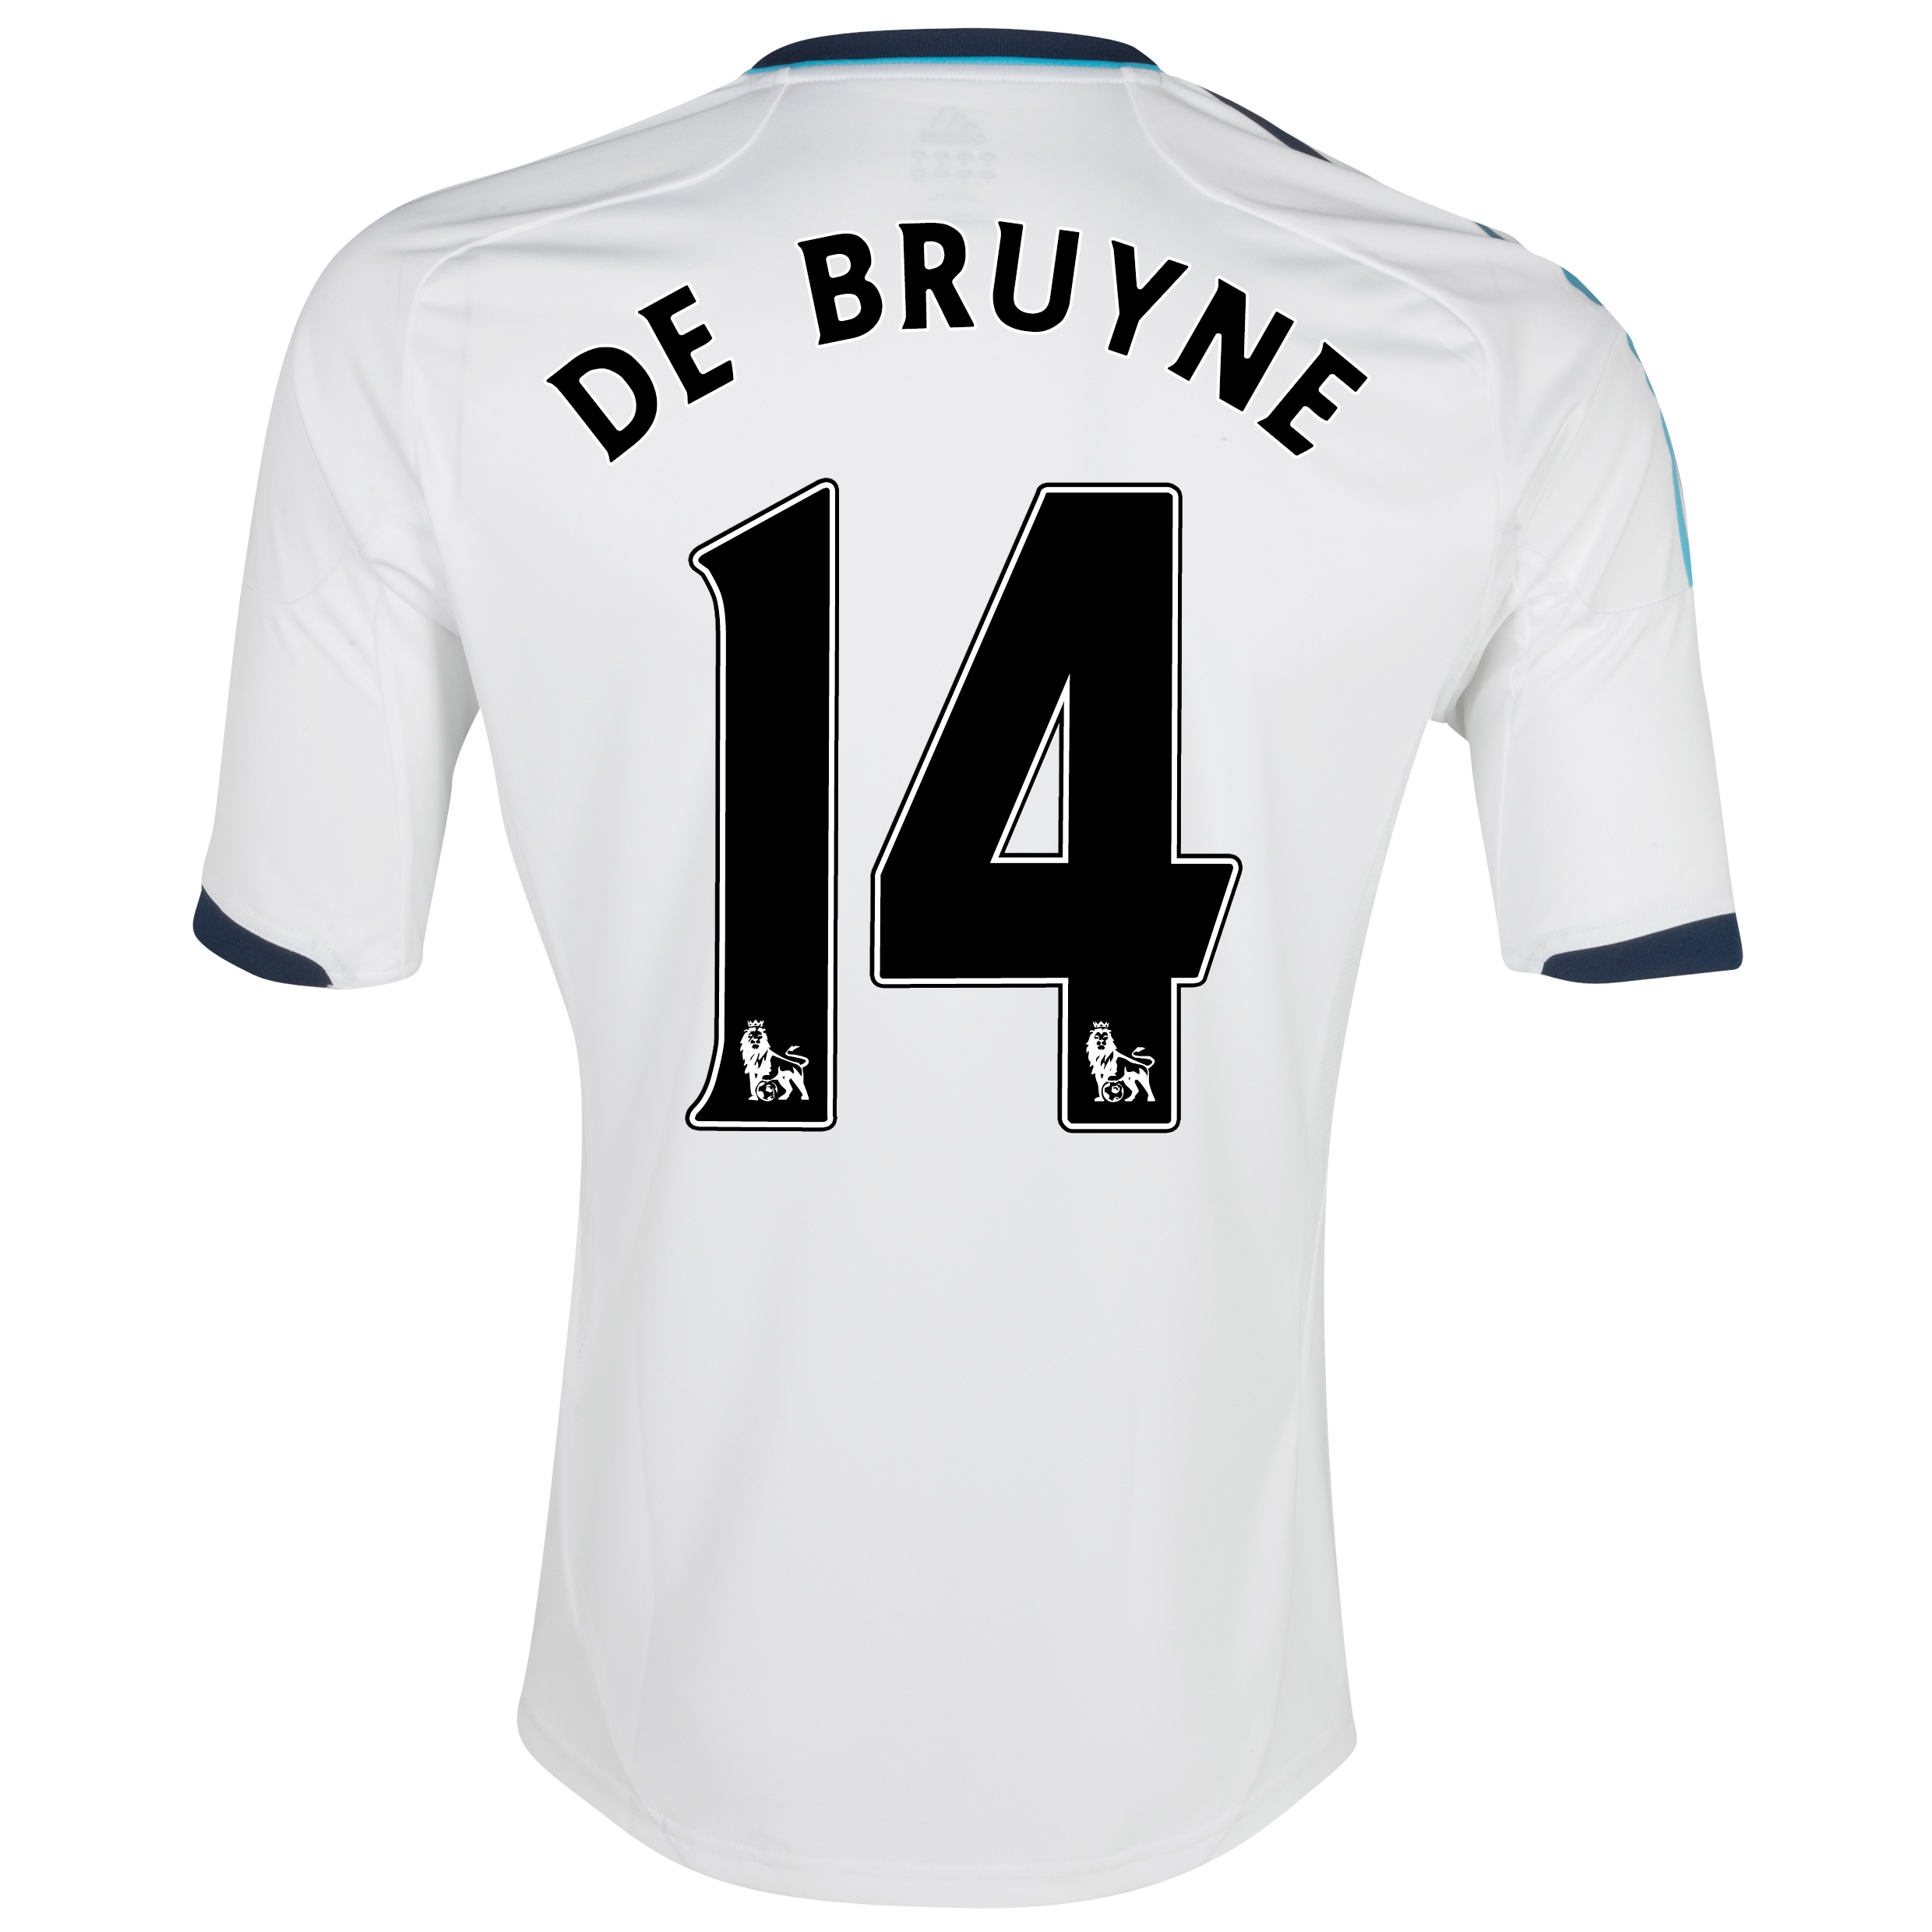 Chelsea Away Shirt 2012/13 - Kids with De Bruyne 14 printing